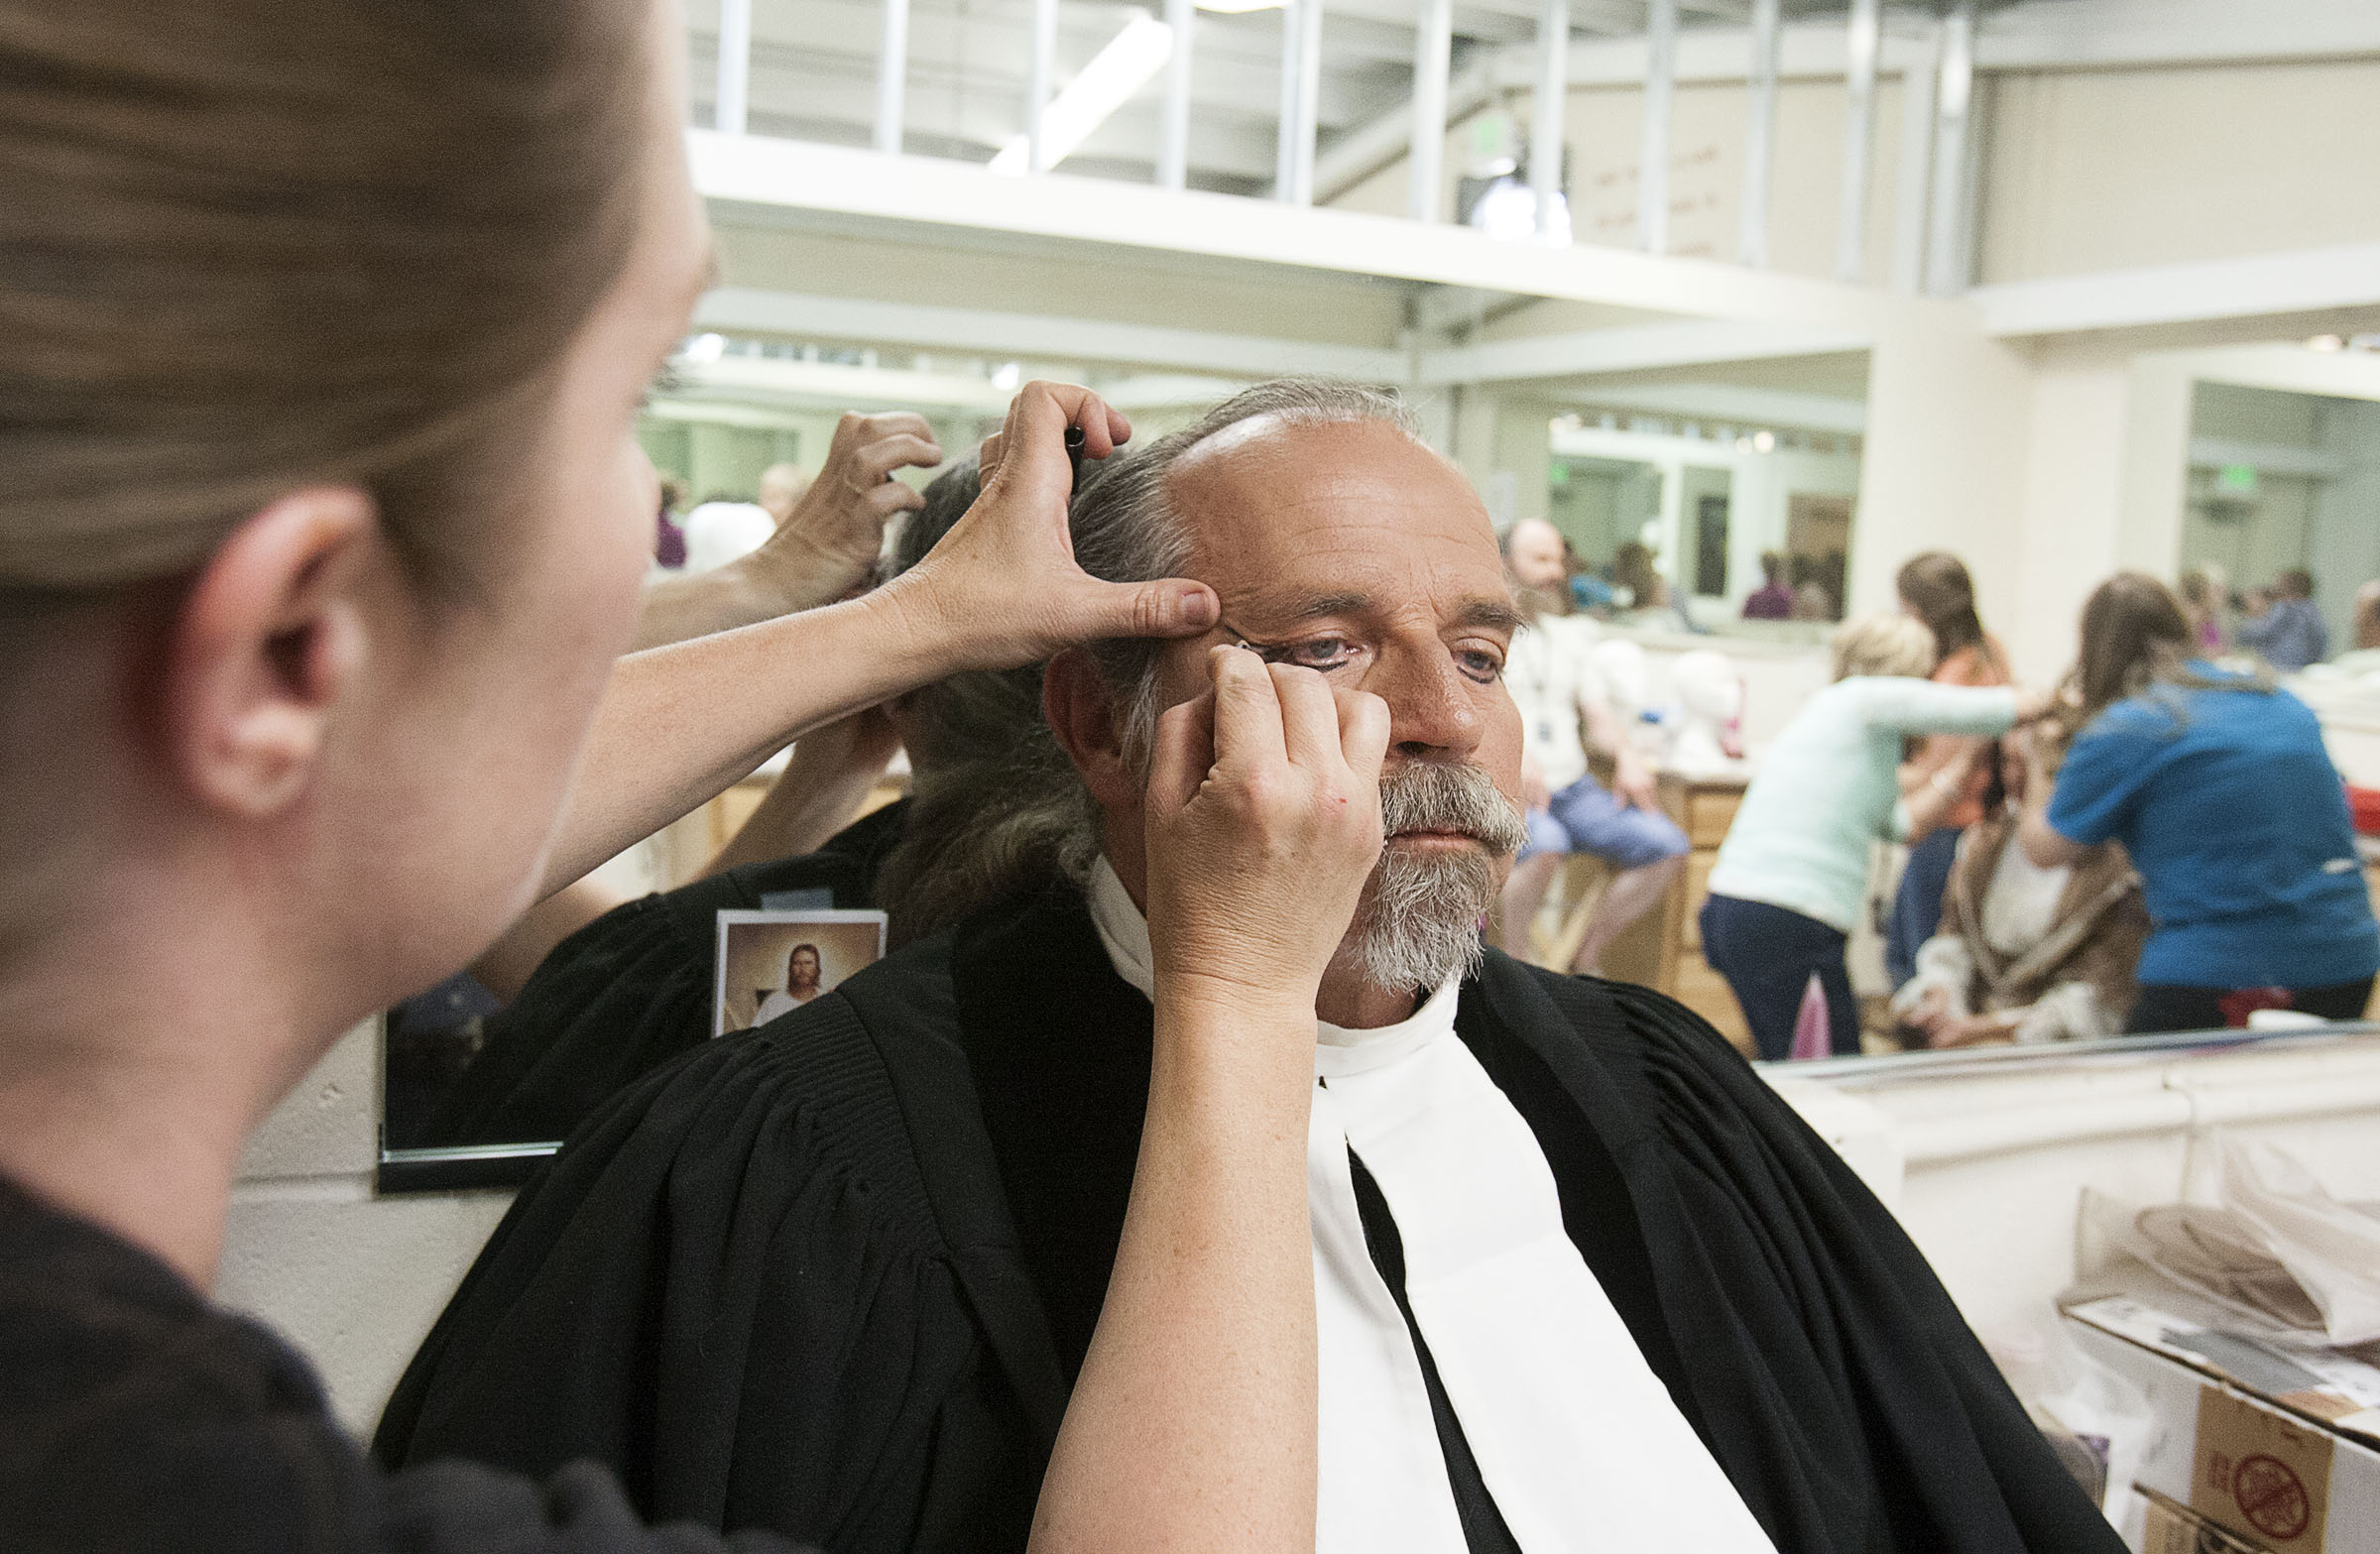 Jack Keisel, who portrays a revival preacher, gets a final touch of makeup before the Mormon Miracle Pageant in Manti on Wednesday, June 15, 2016.